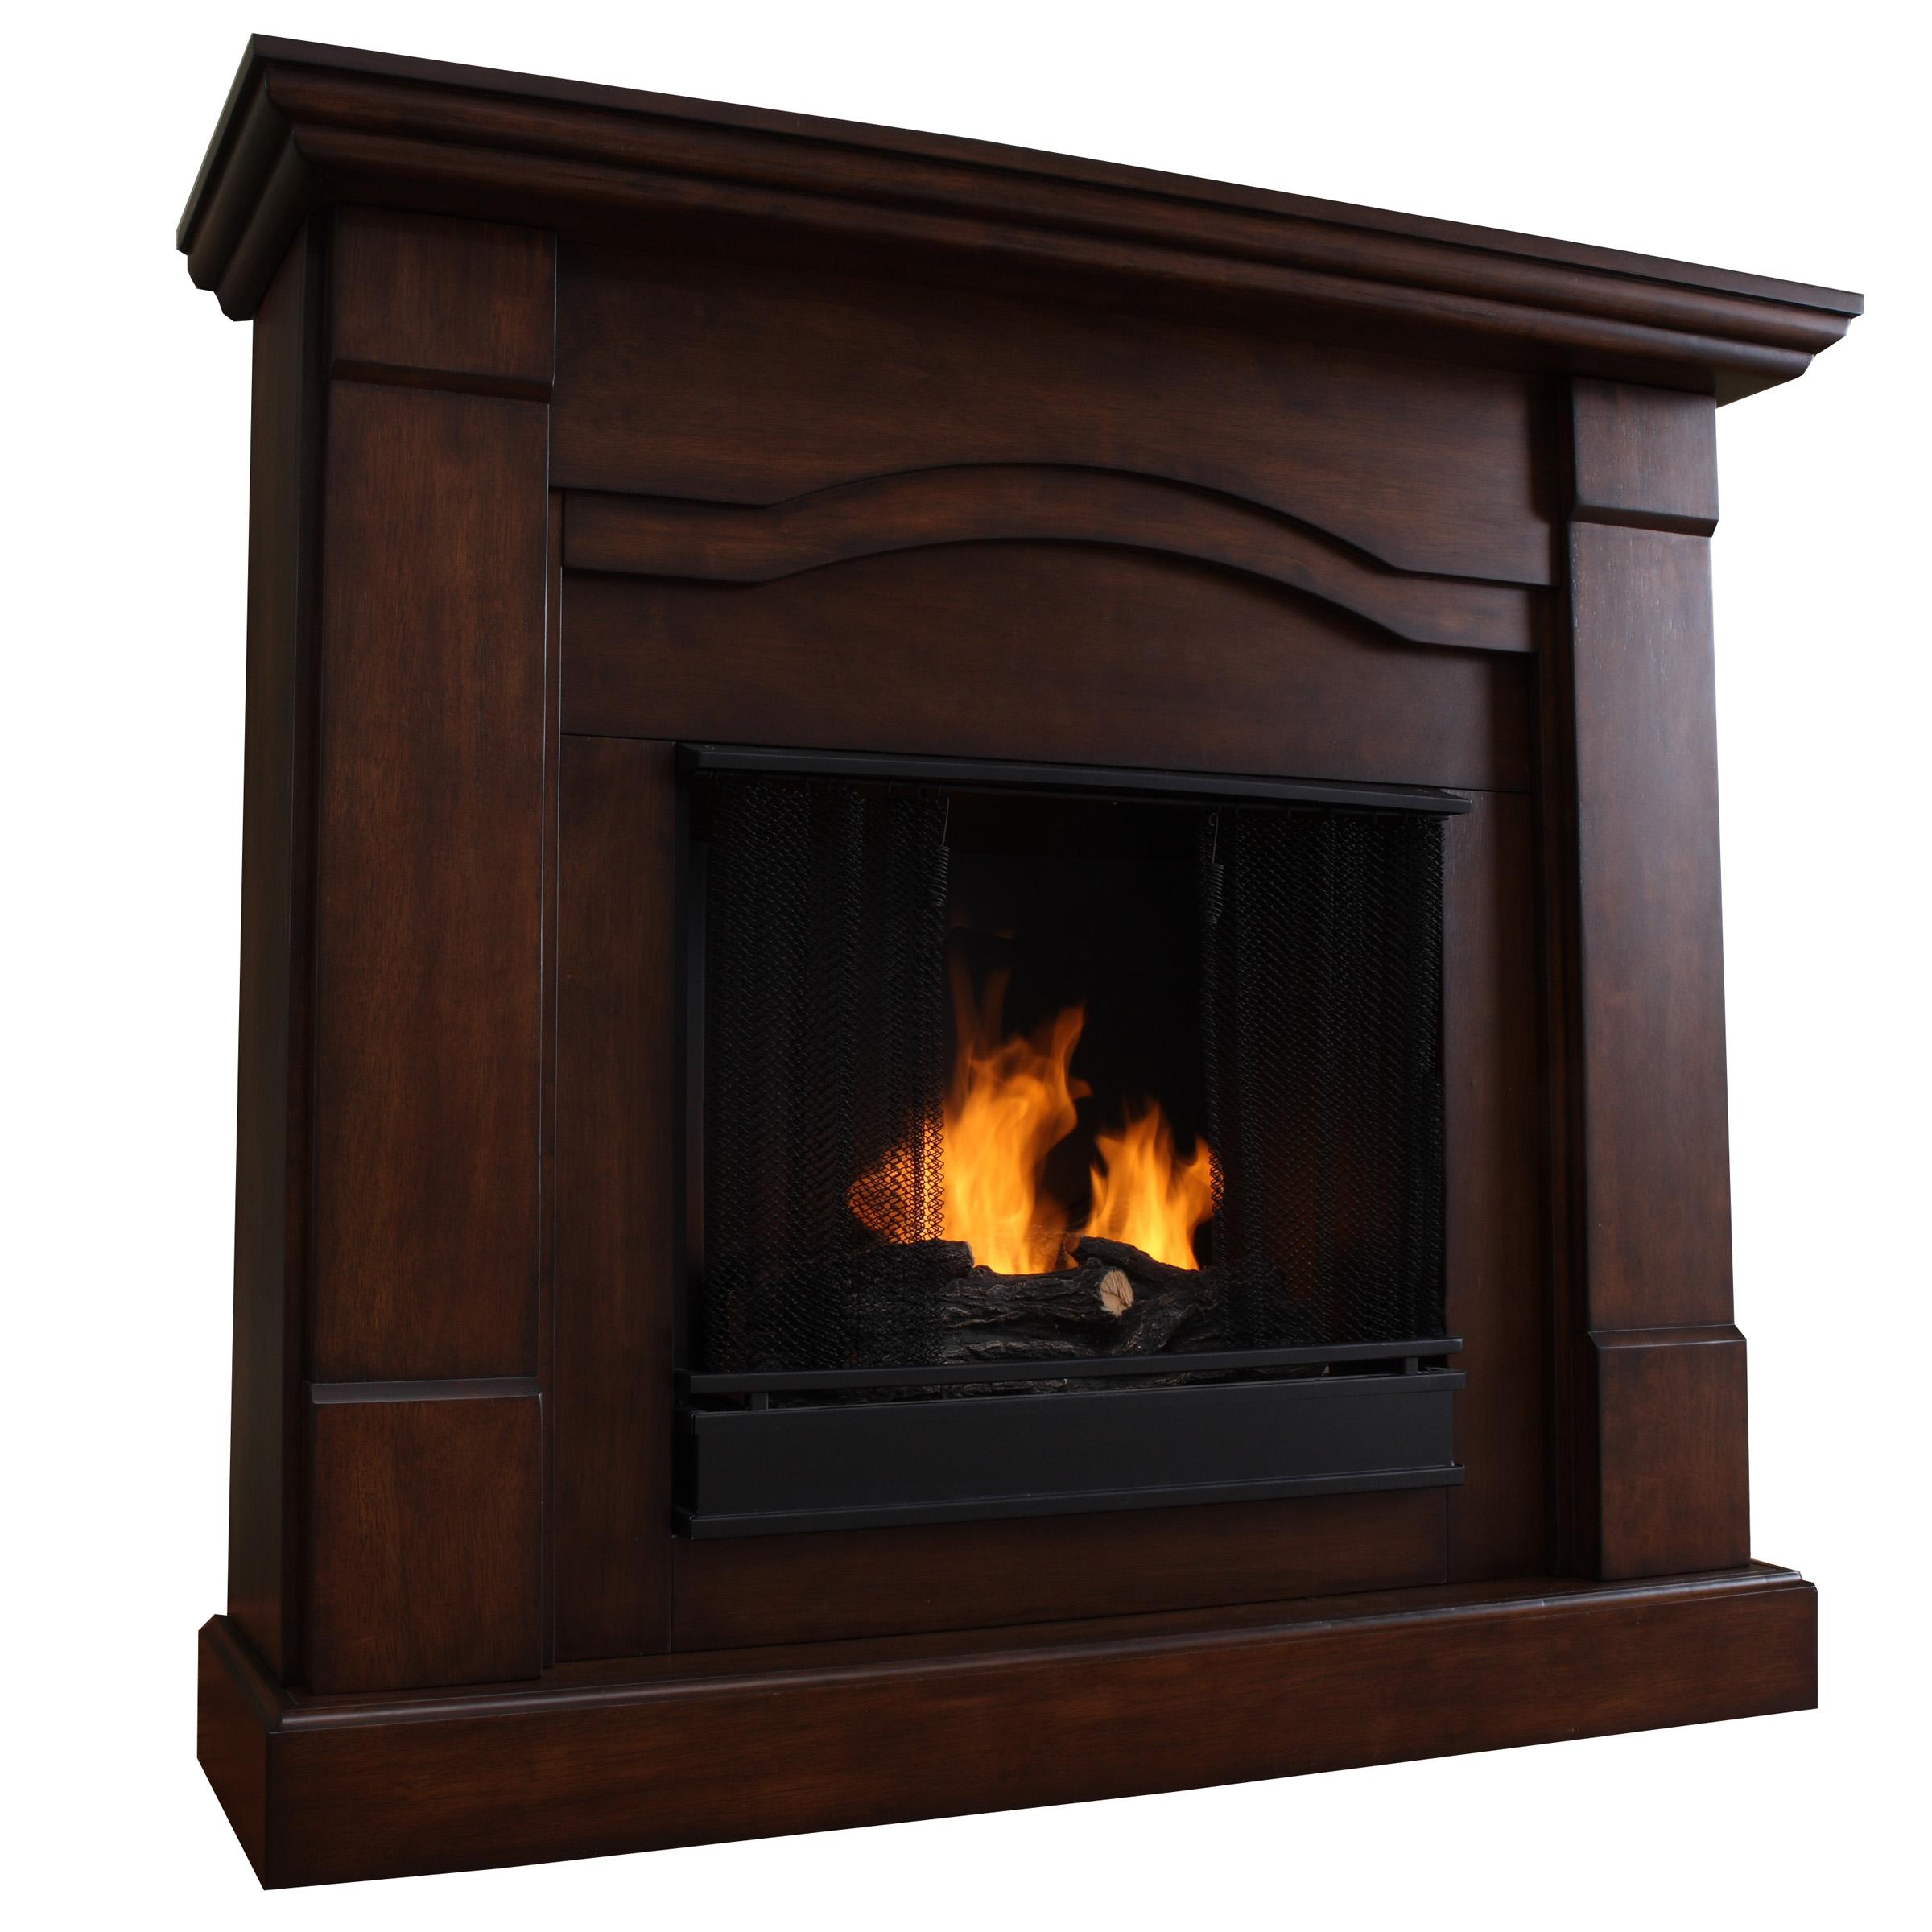 The Frisco Gel Fireplace by Real Flame